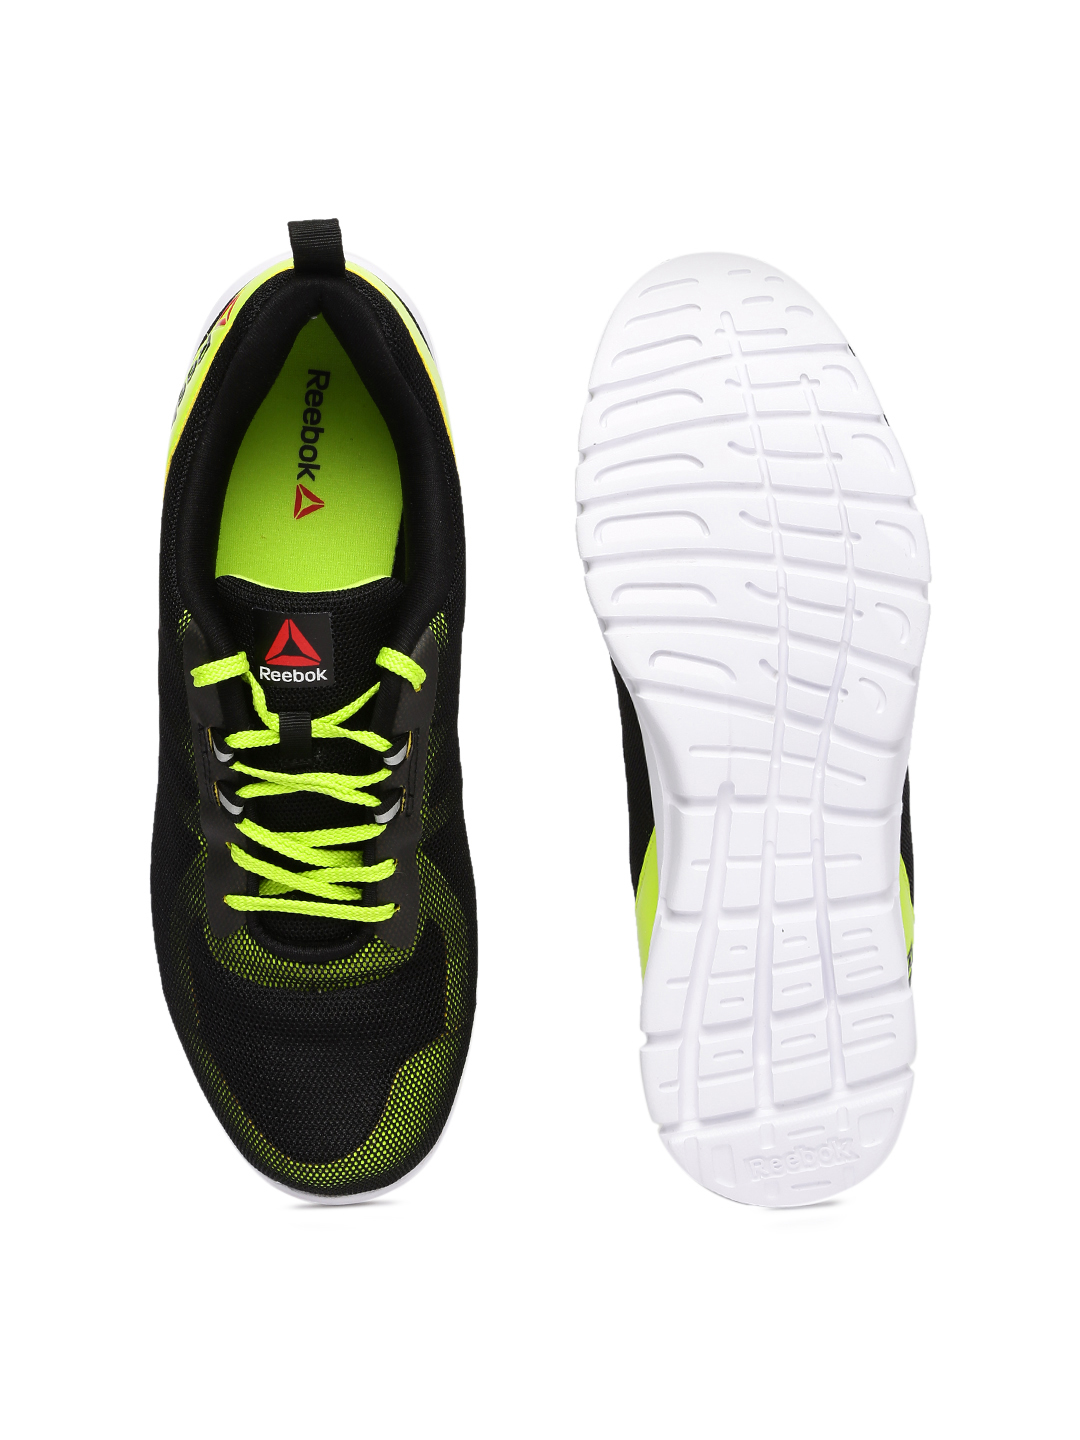 c61c960493a54 REEBOK Men Black Super Lite Running Shoes Price in India